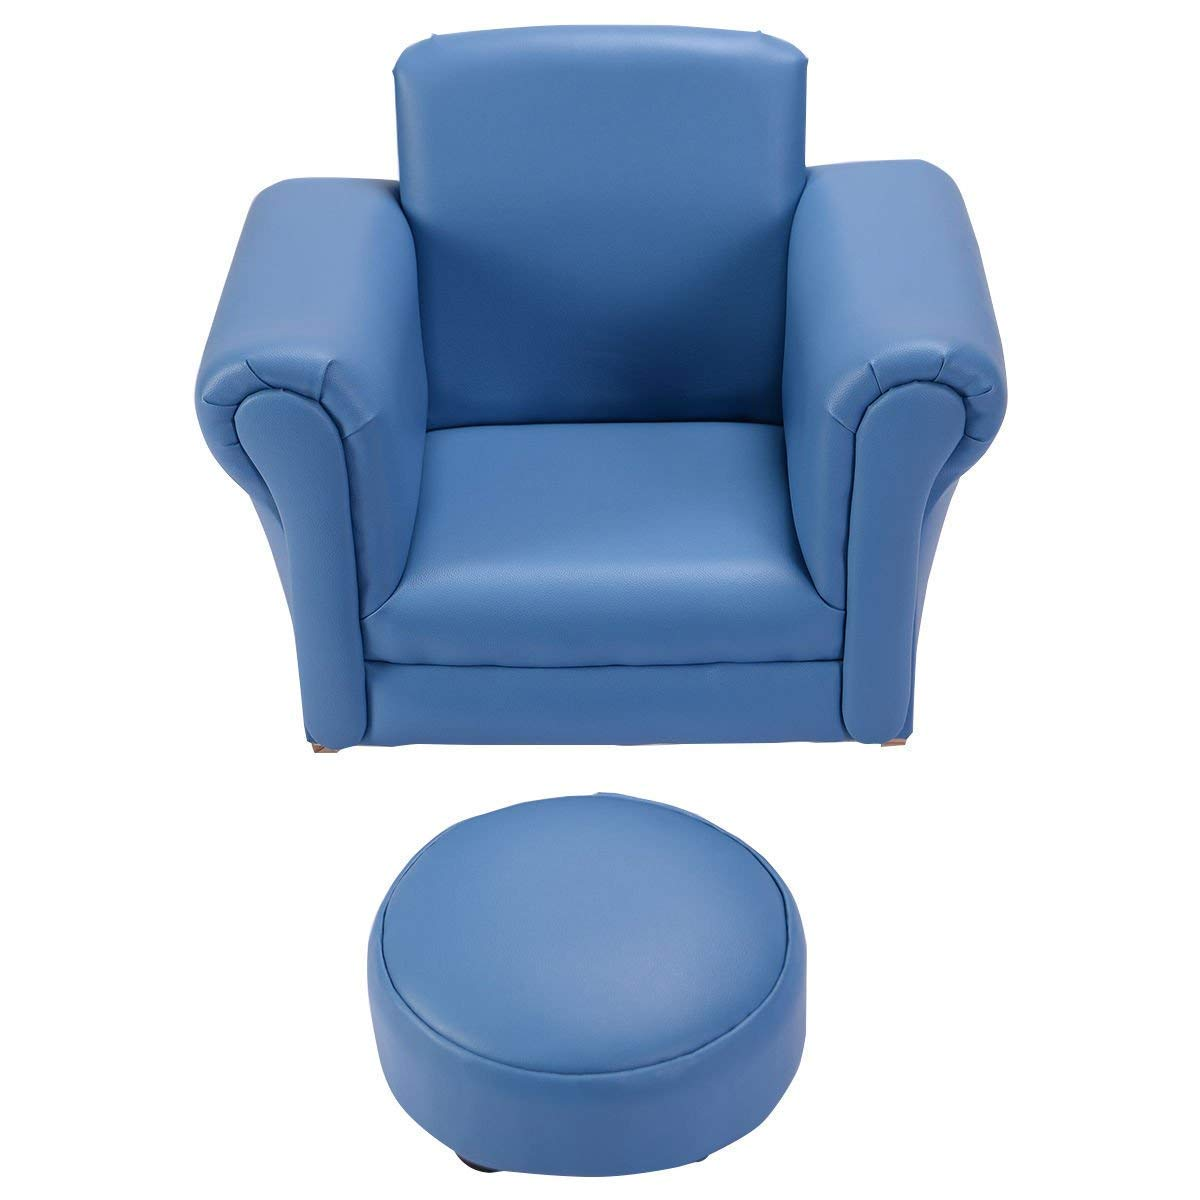 Pleasant Costzon Kids Chair And Ottoman Set With Rocking Function Blue Evergreenethics Interior Chair Design Evergreenethicsorg